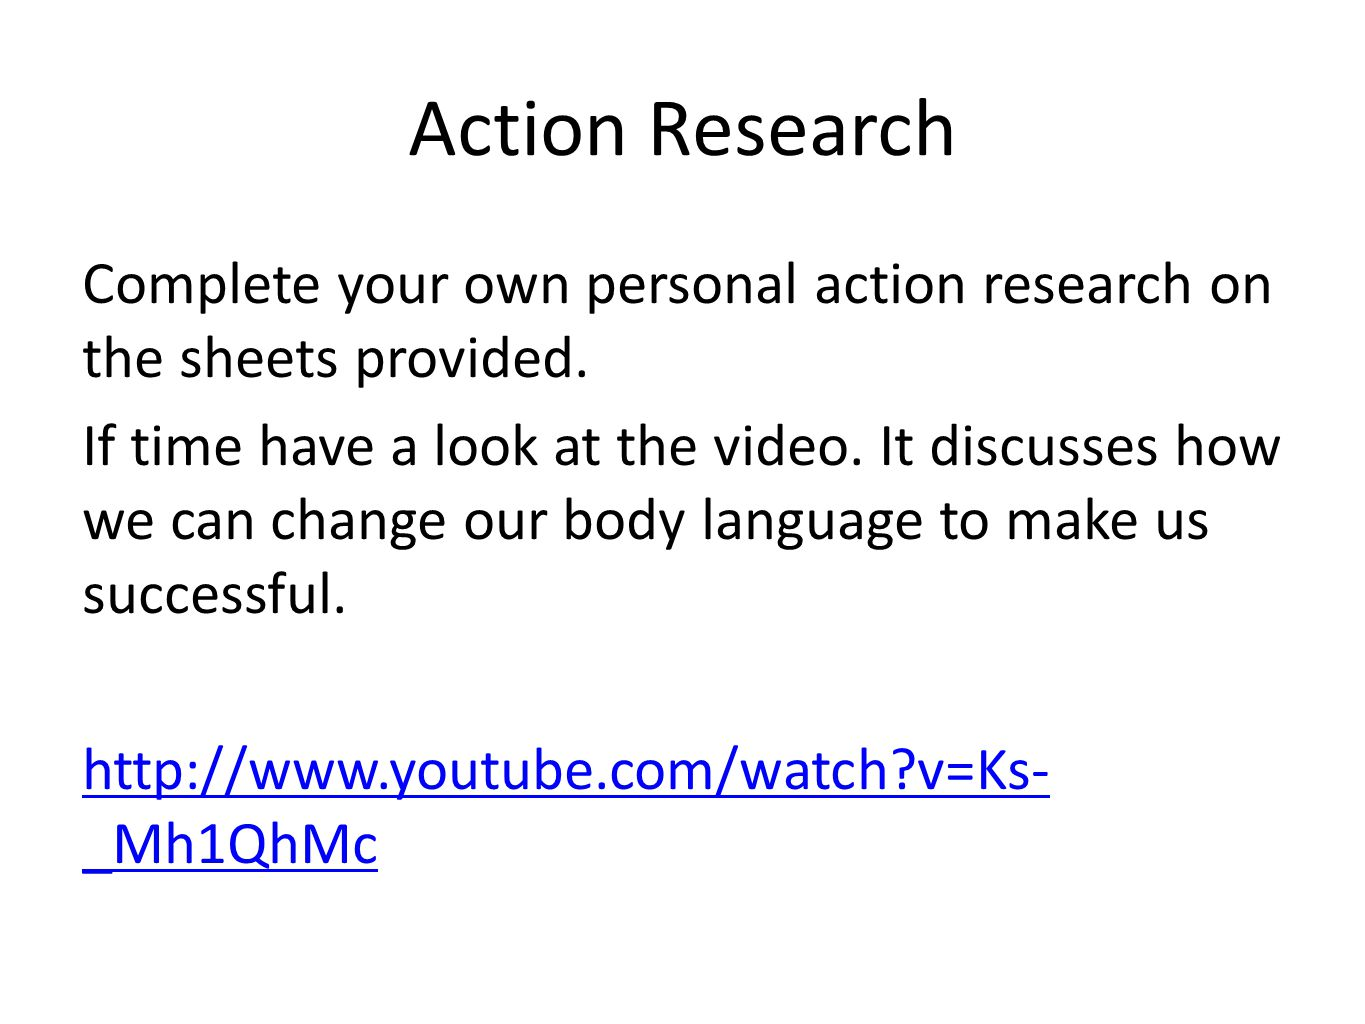 Action Research Complete your own personal action research on the sheets provided.